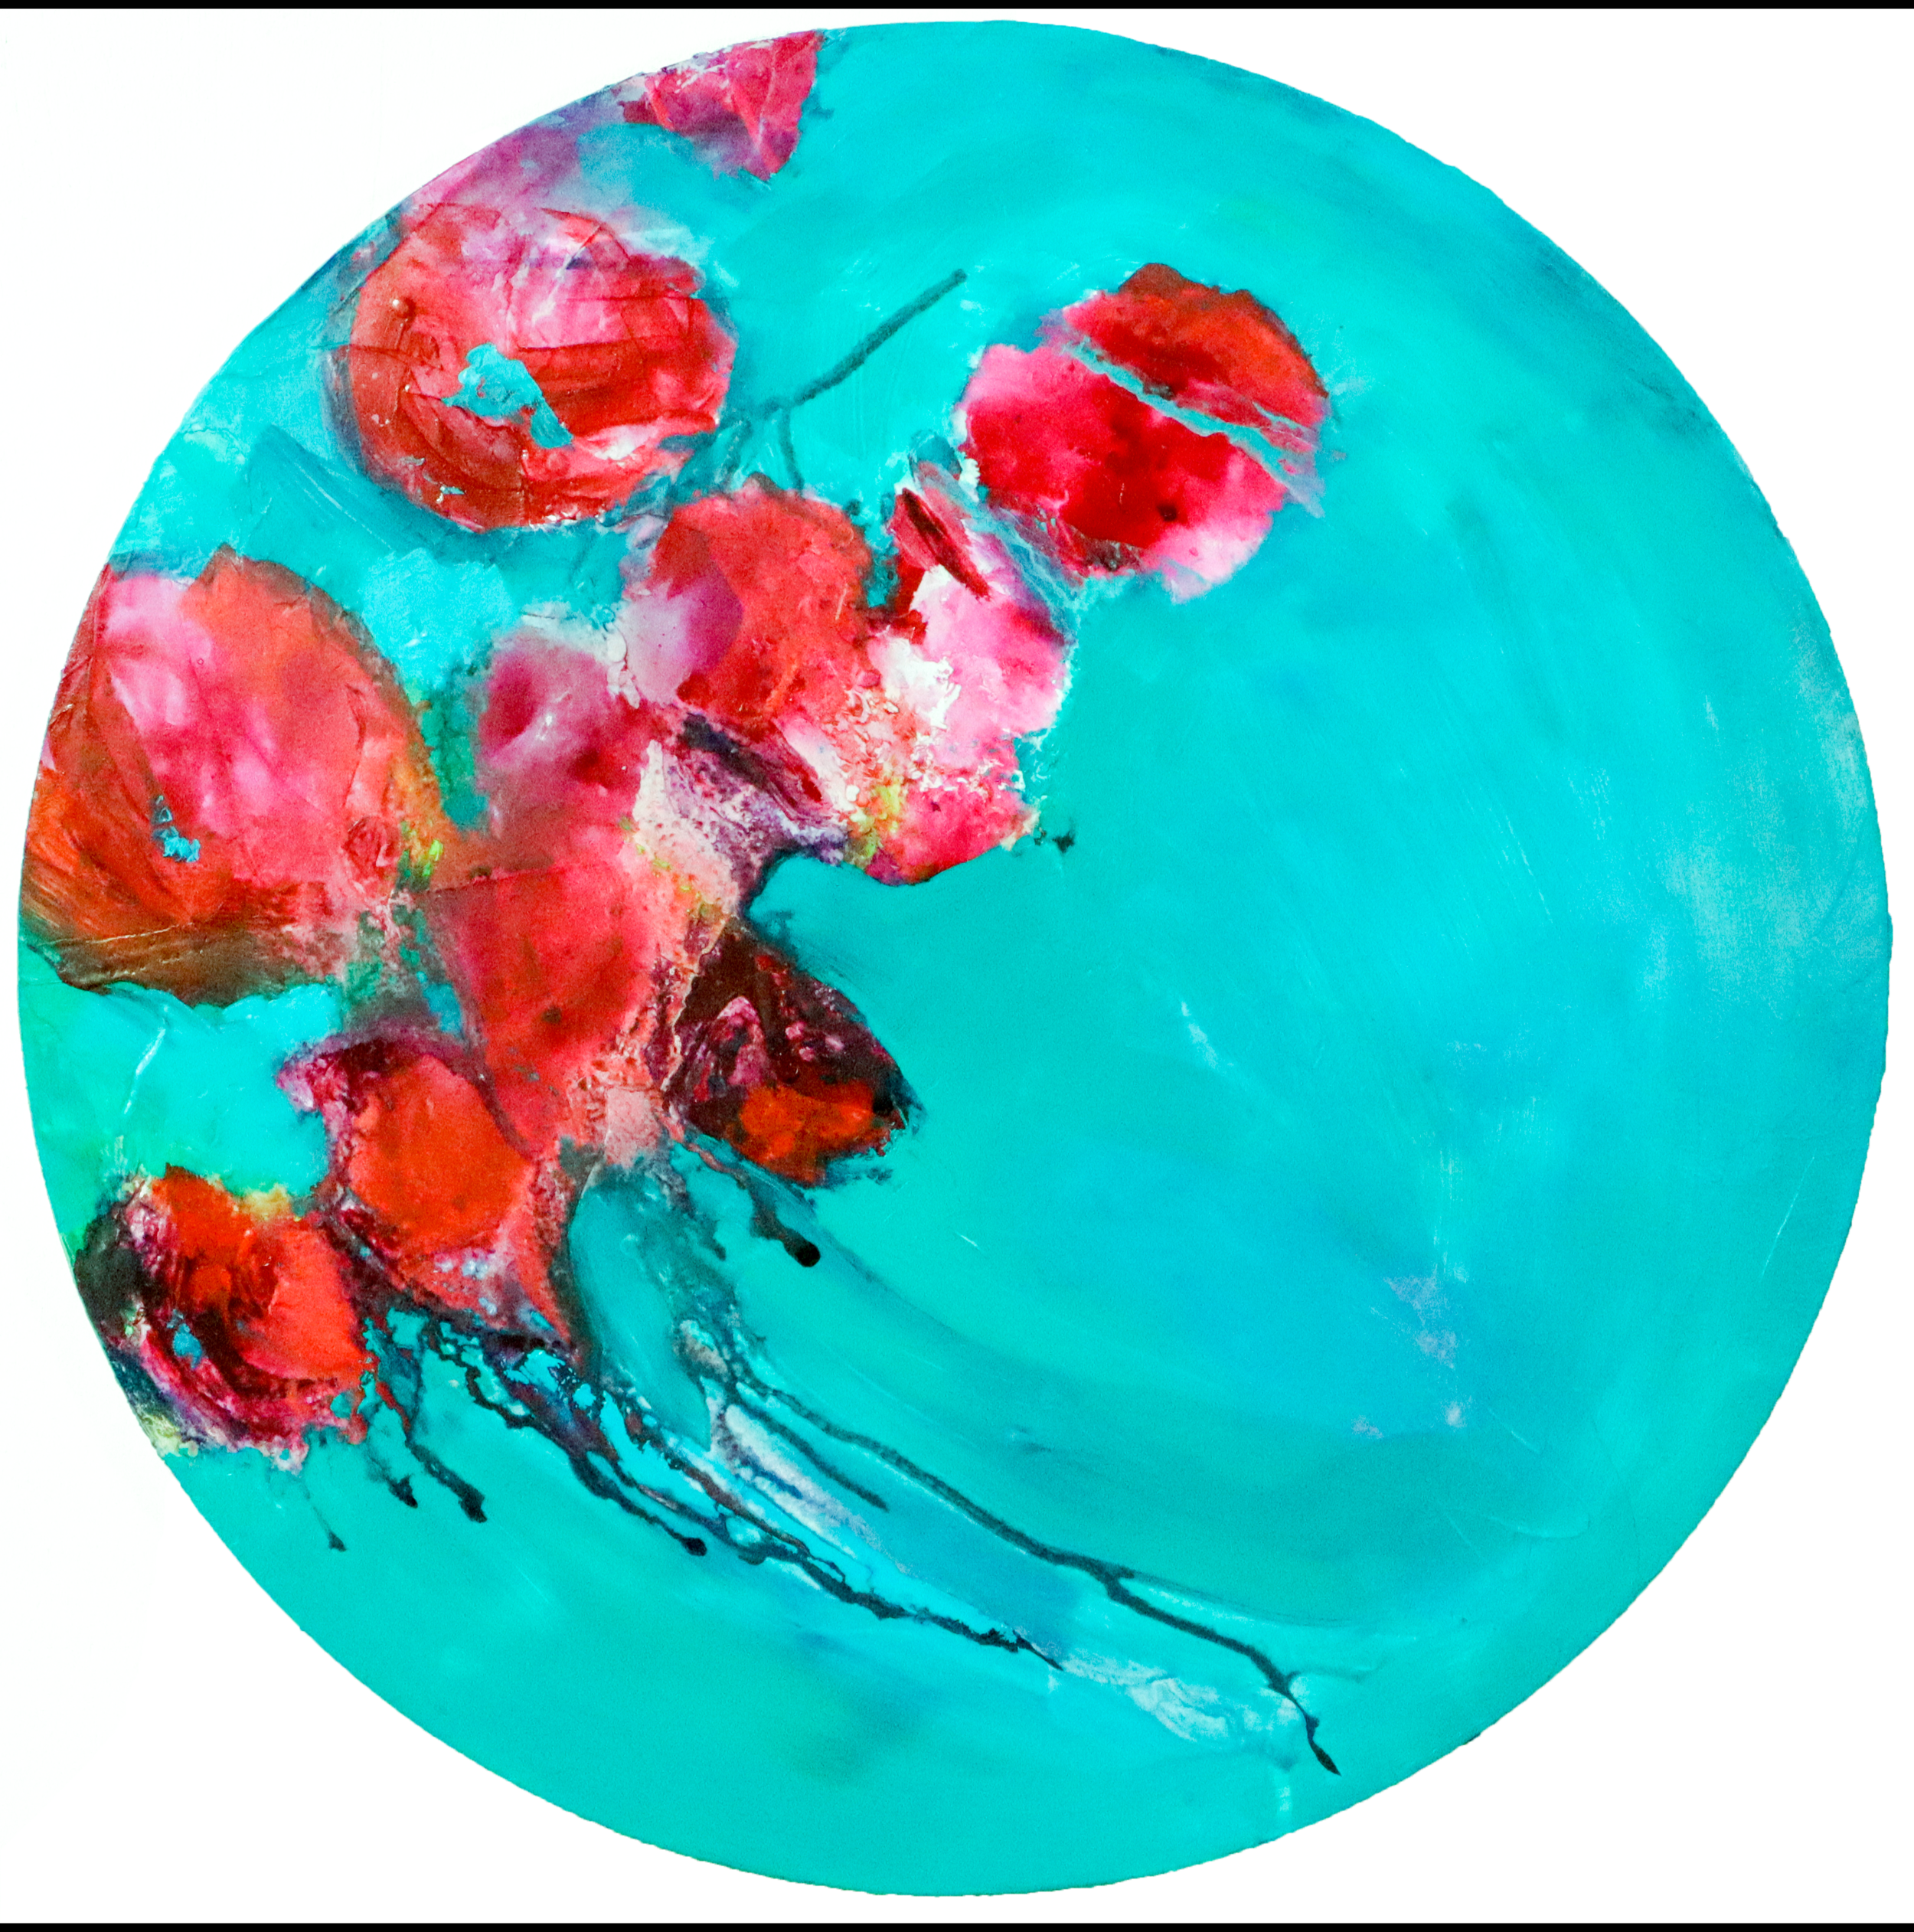 East Coast Art Collective Collectively Chromatic - Cultural Arts Center at Glen AllenJanuary 17 - March 10, 2019To purchase a piece from this show, email lory@loryivey.com